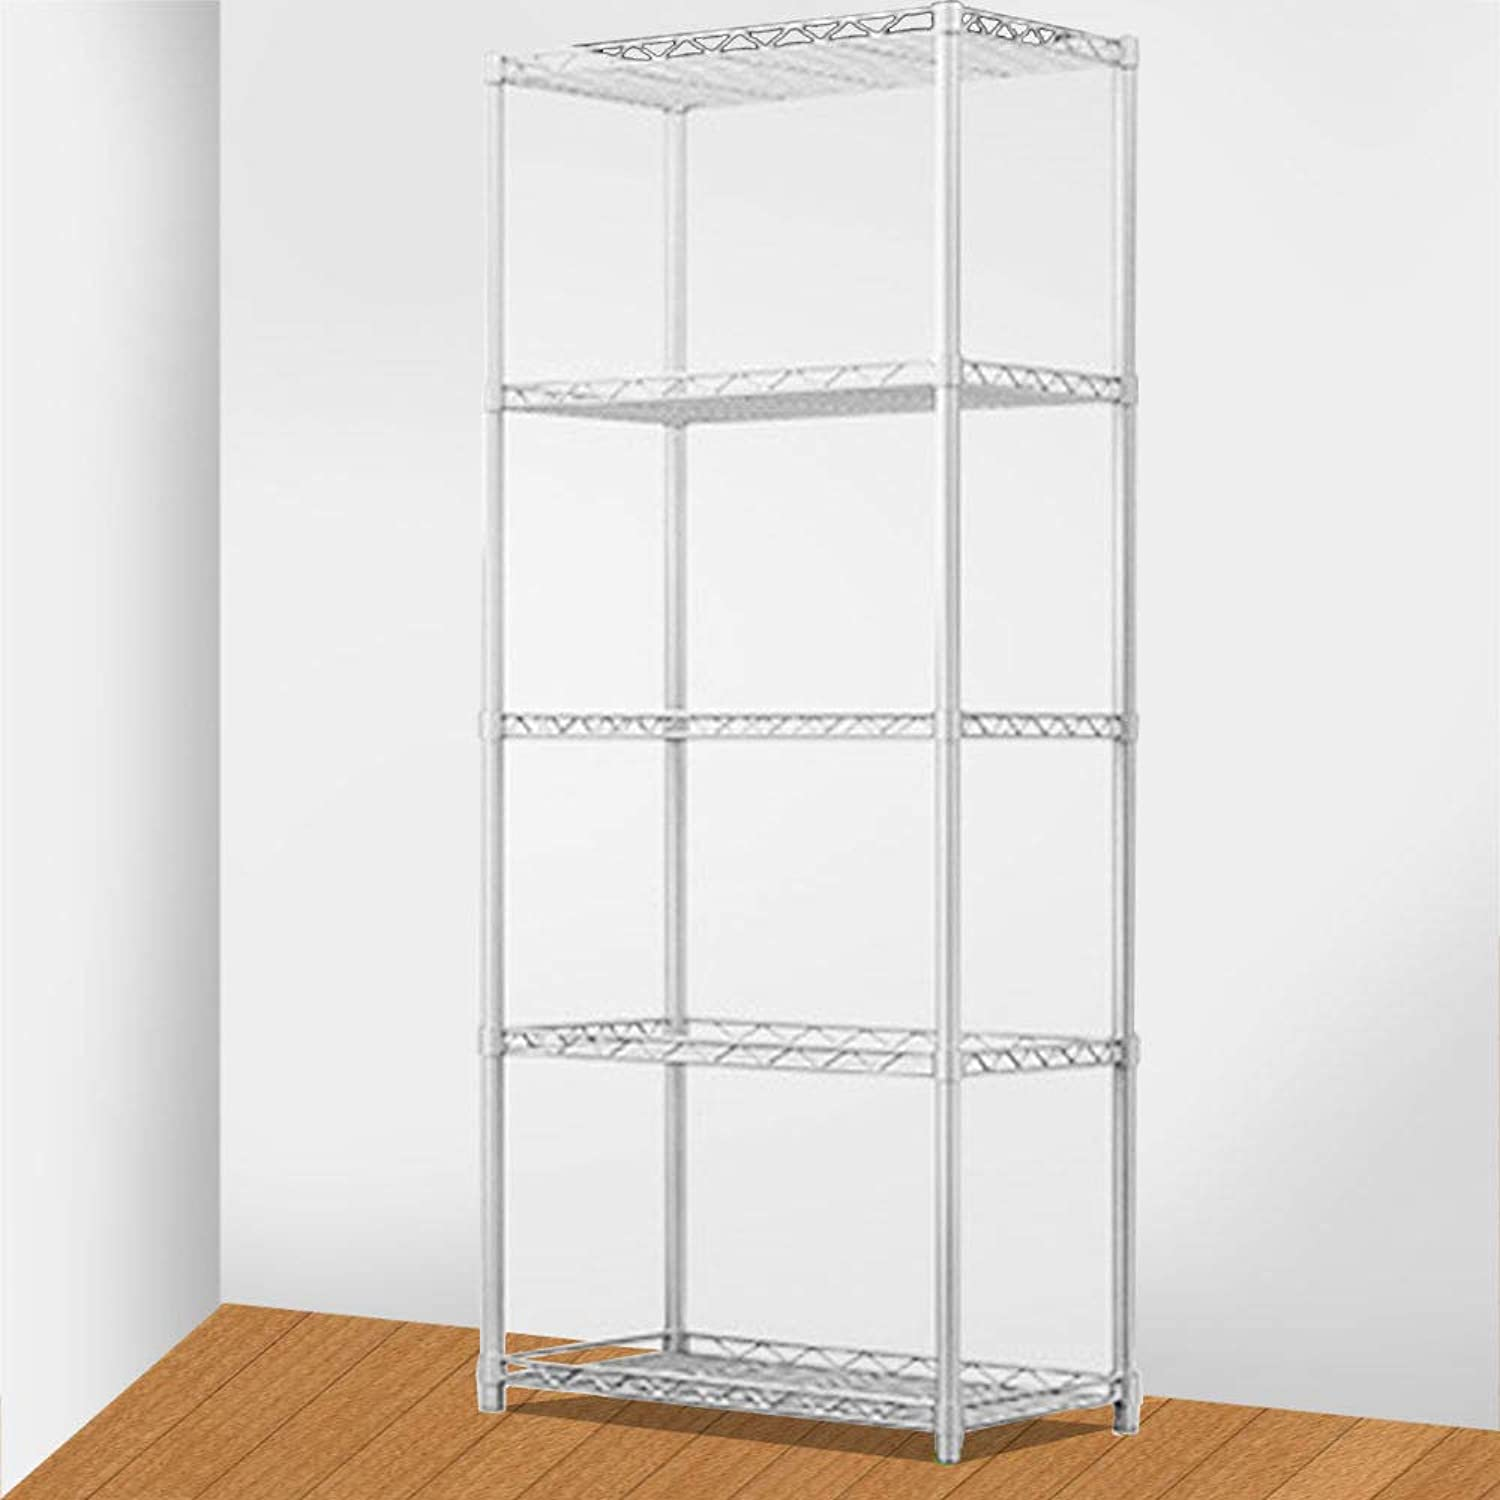 Generic en Office Unitg Wire Shelf Wire Shelf Tier Silver Metal Kitchen Office Storage Rack Shelving Unit Tier Silver